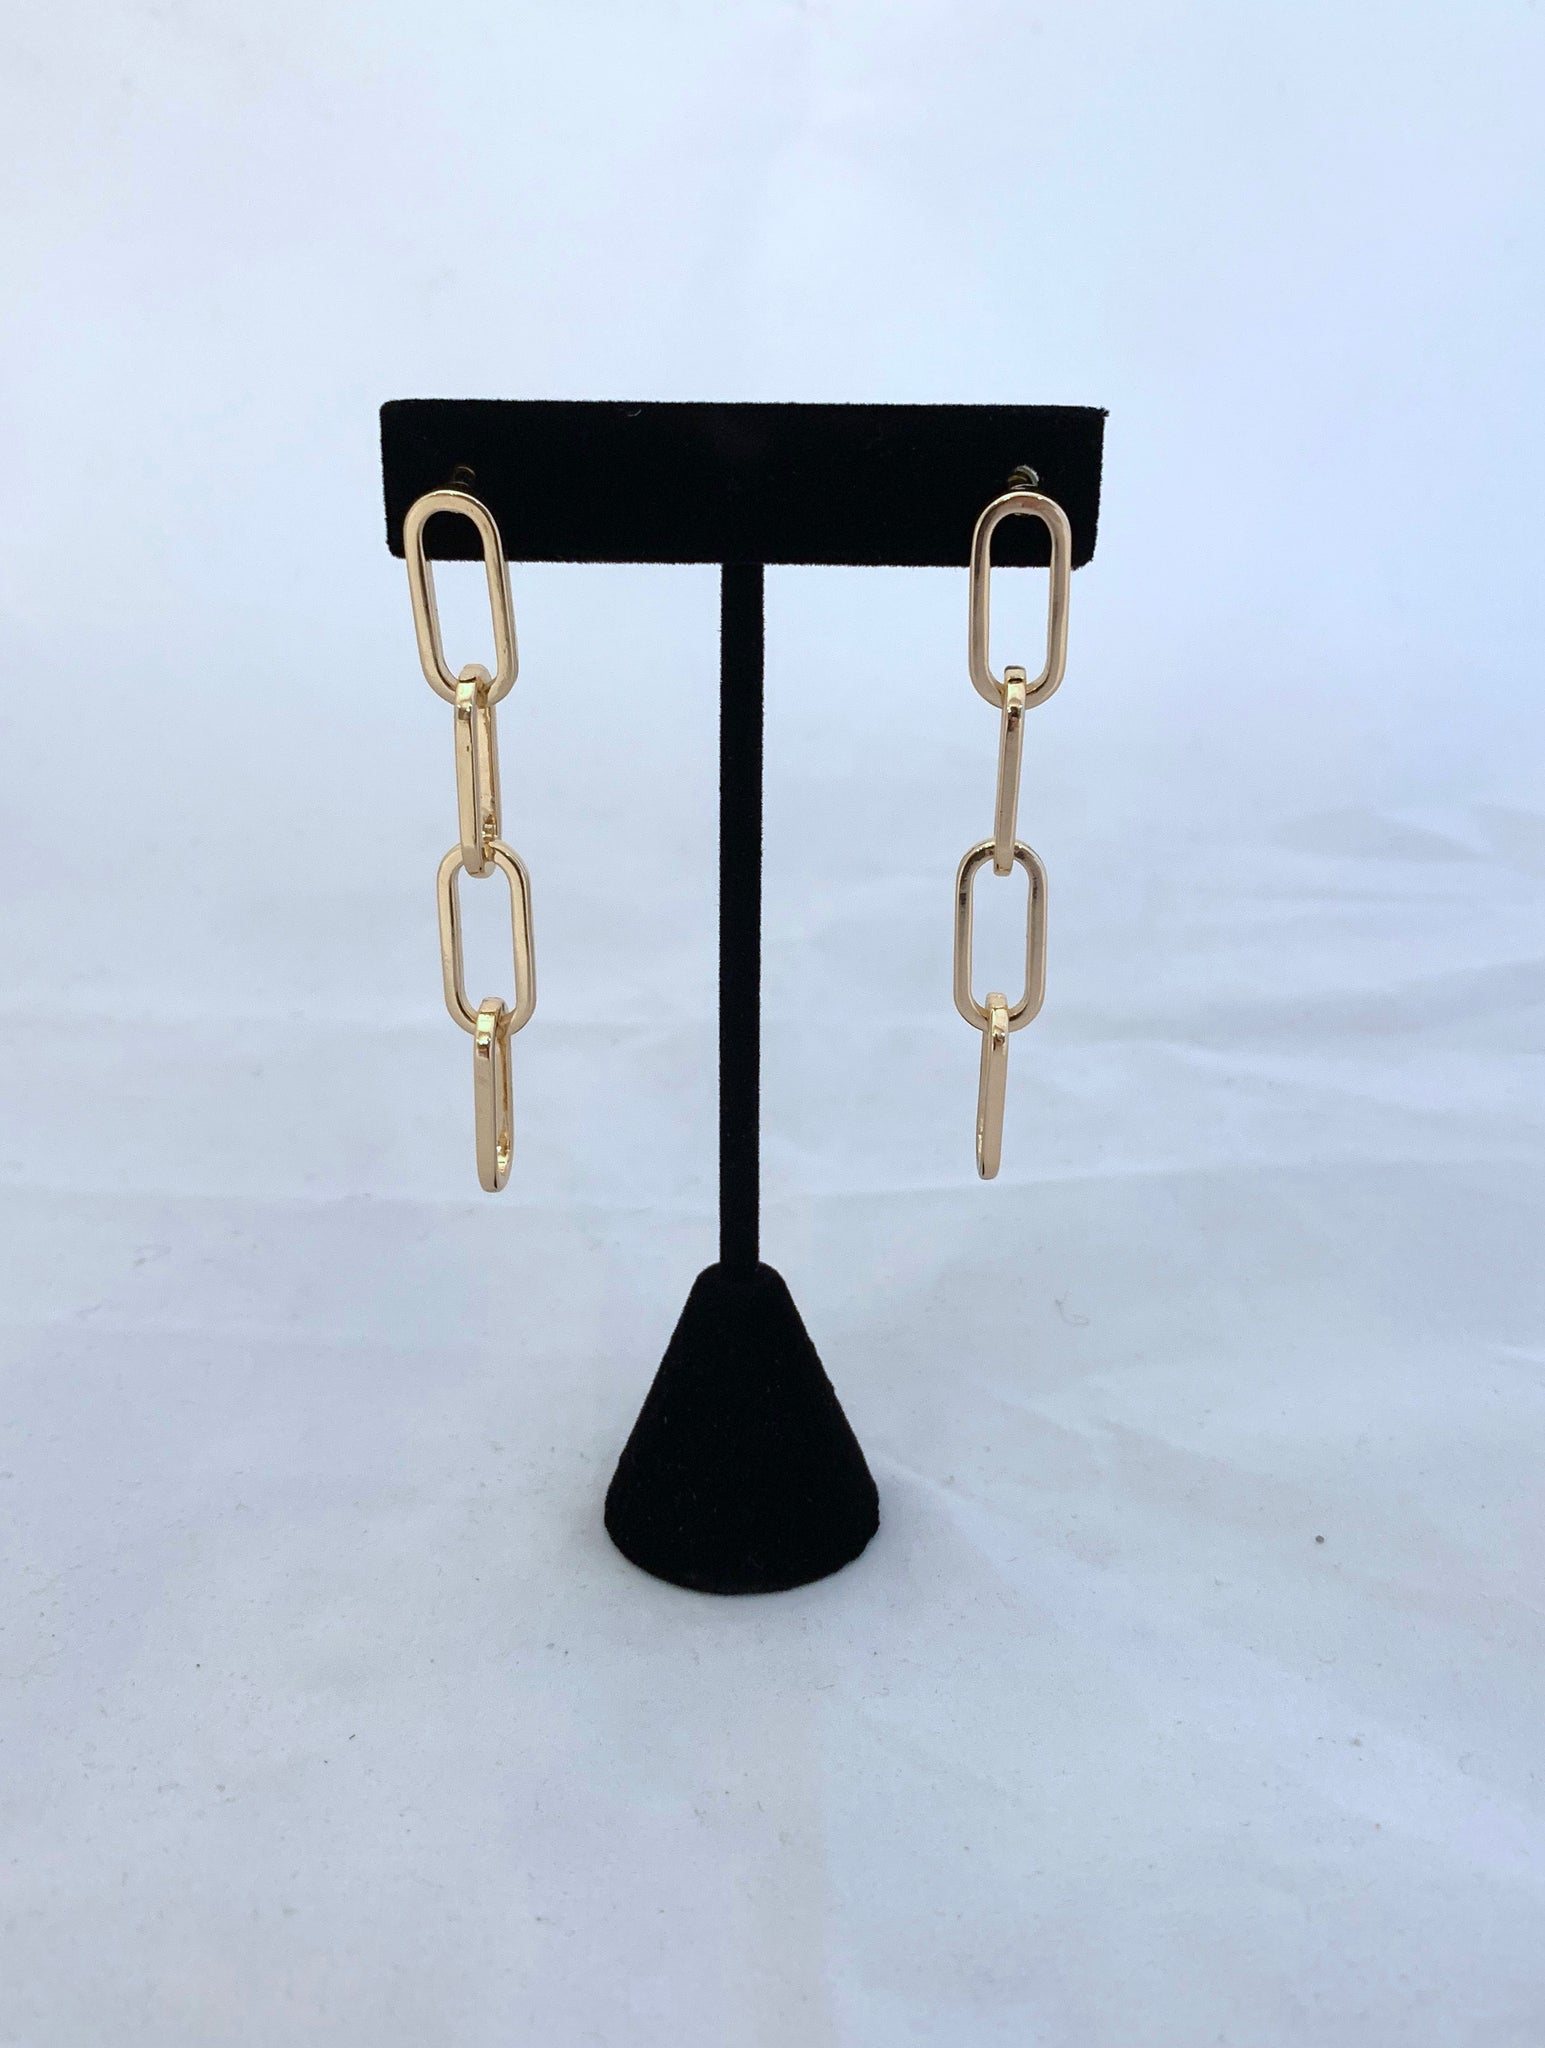 Gold Paperclip Earrings - 4 Links